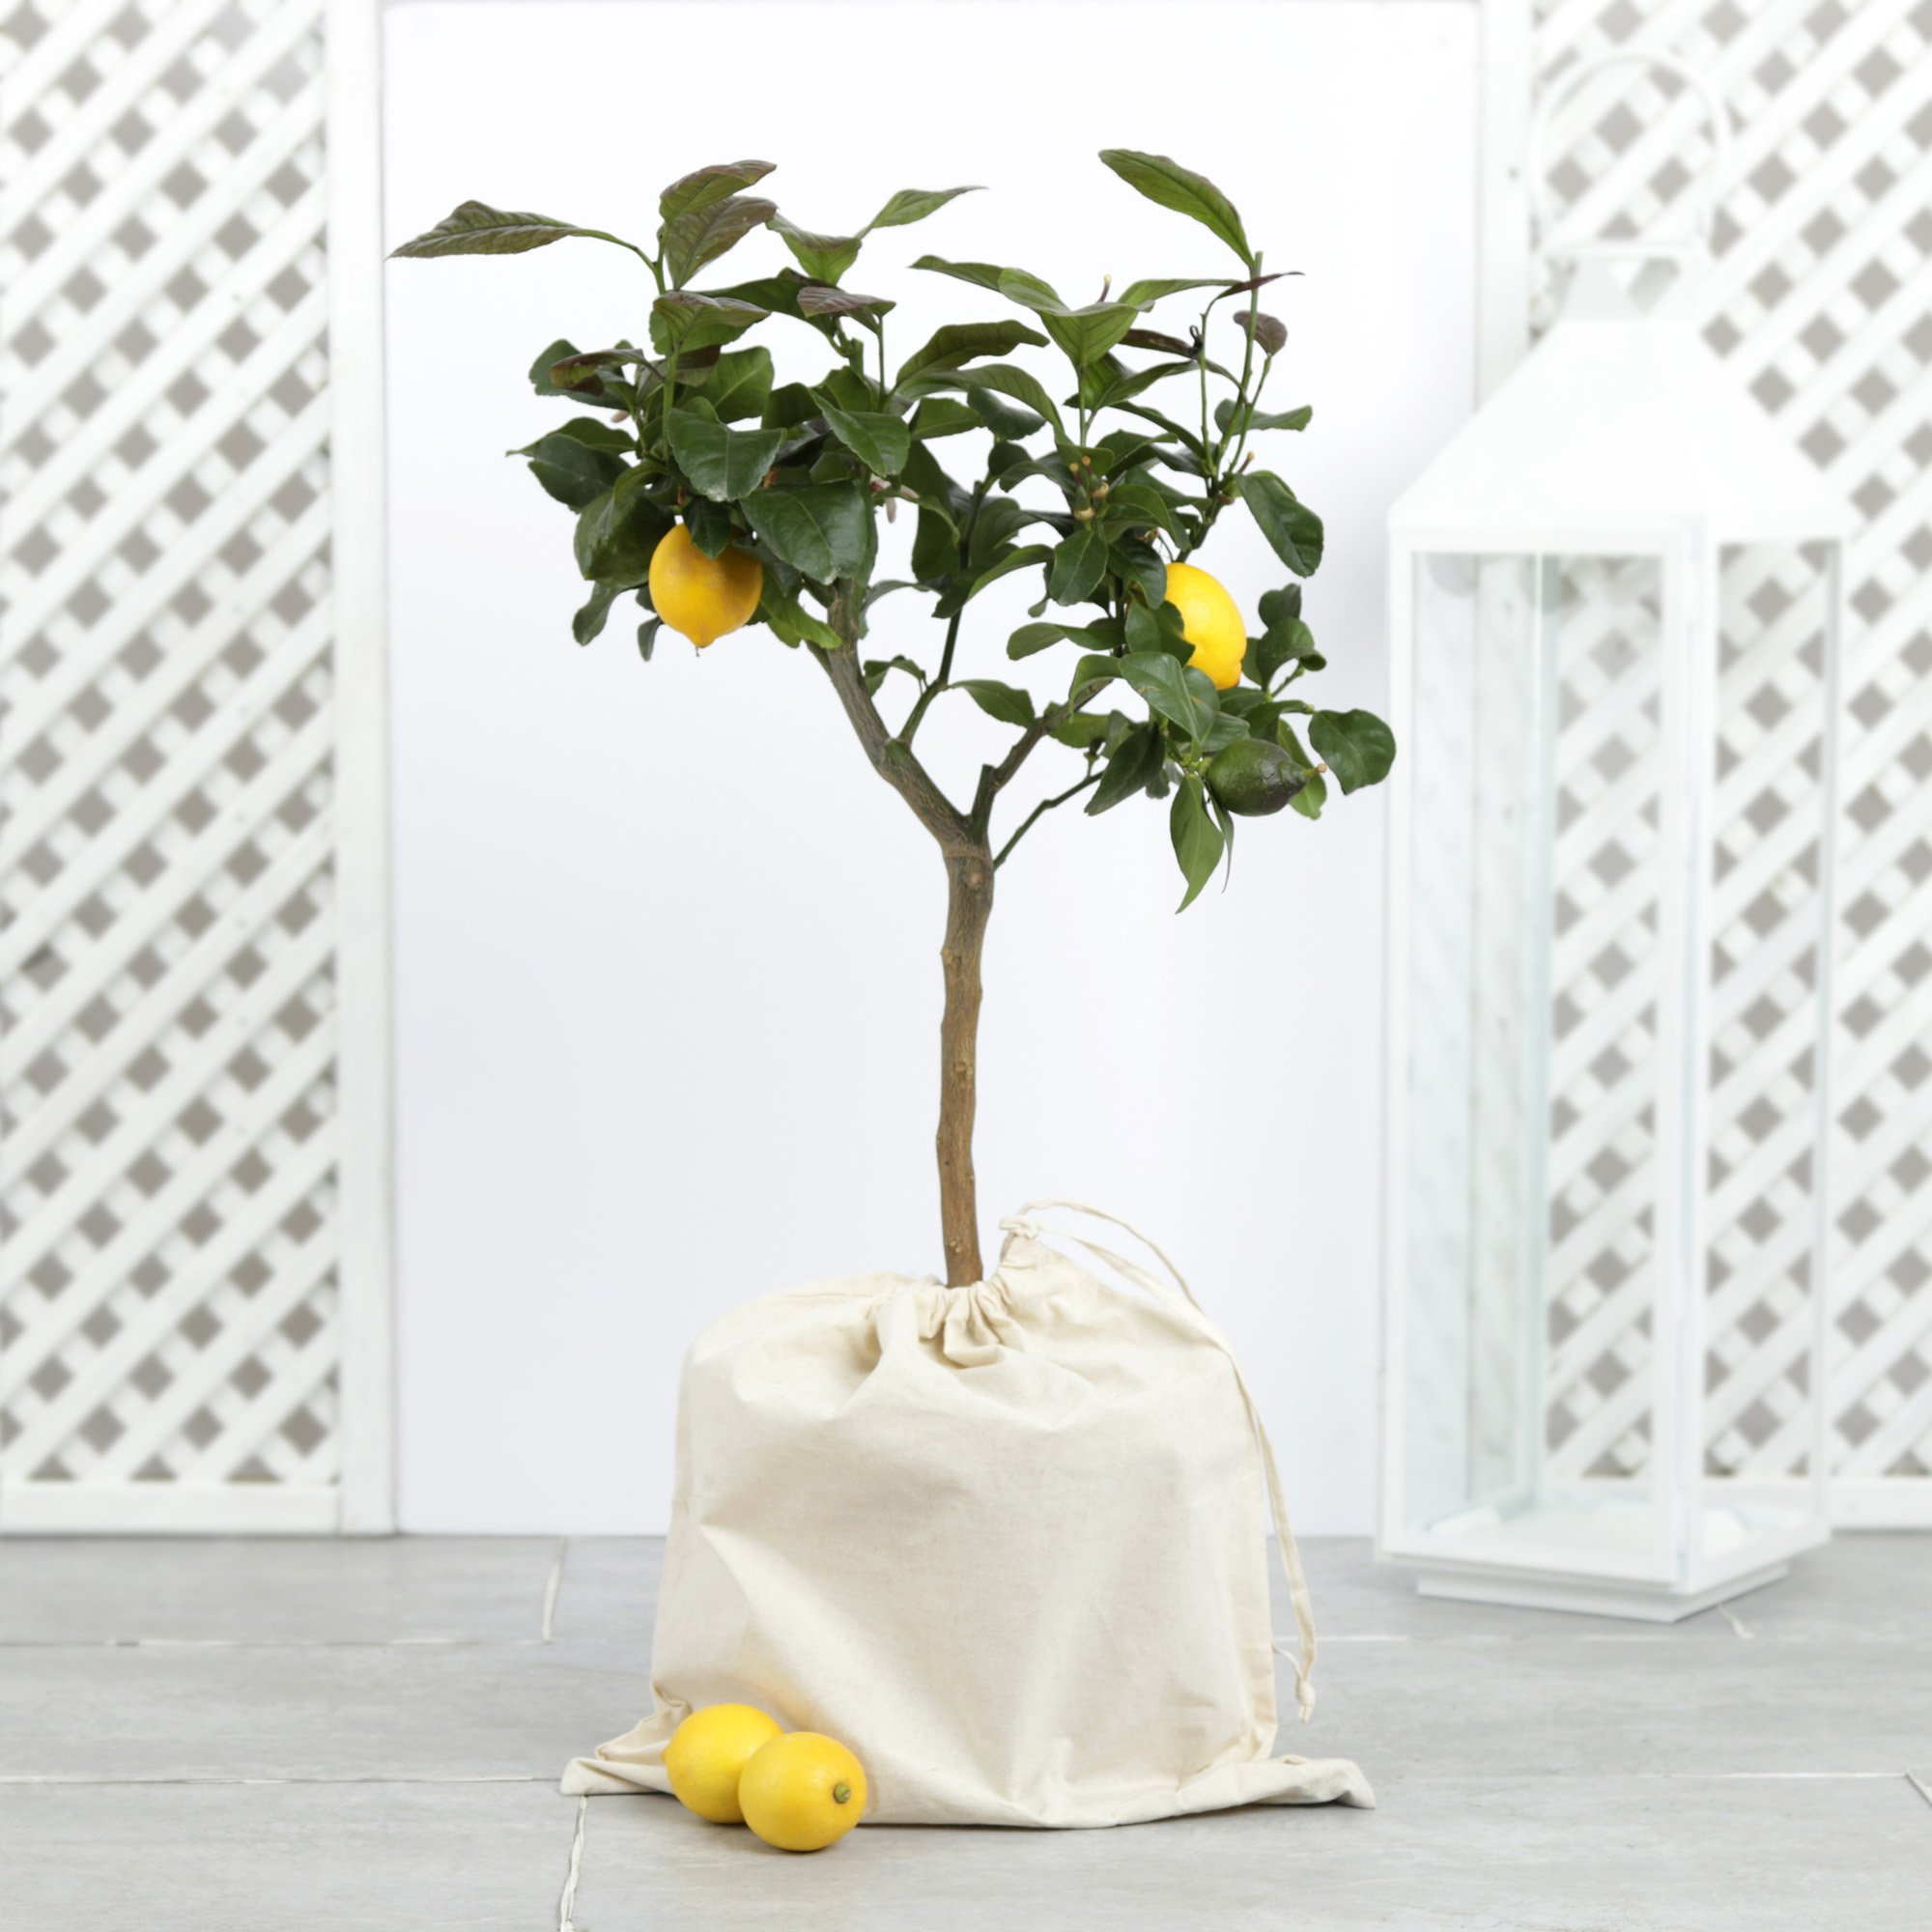 The Outdoor Lemon Tree Flower Delivery - 5 Day Freshness Guarantee By Moonpig